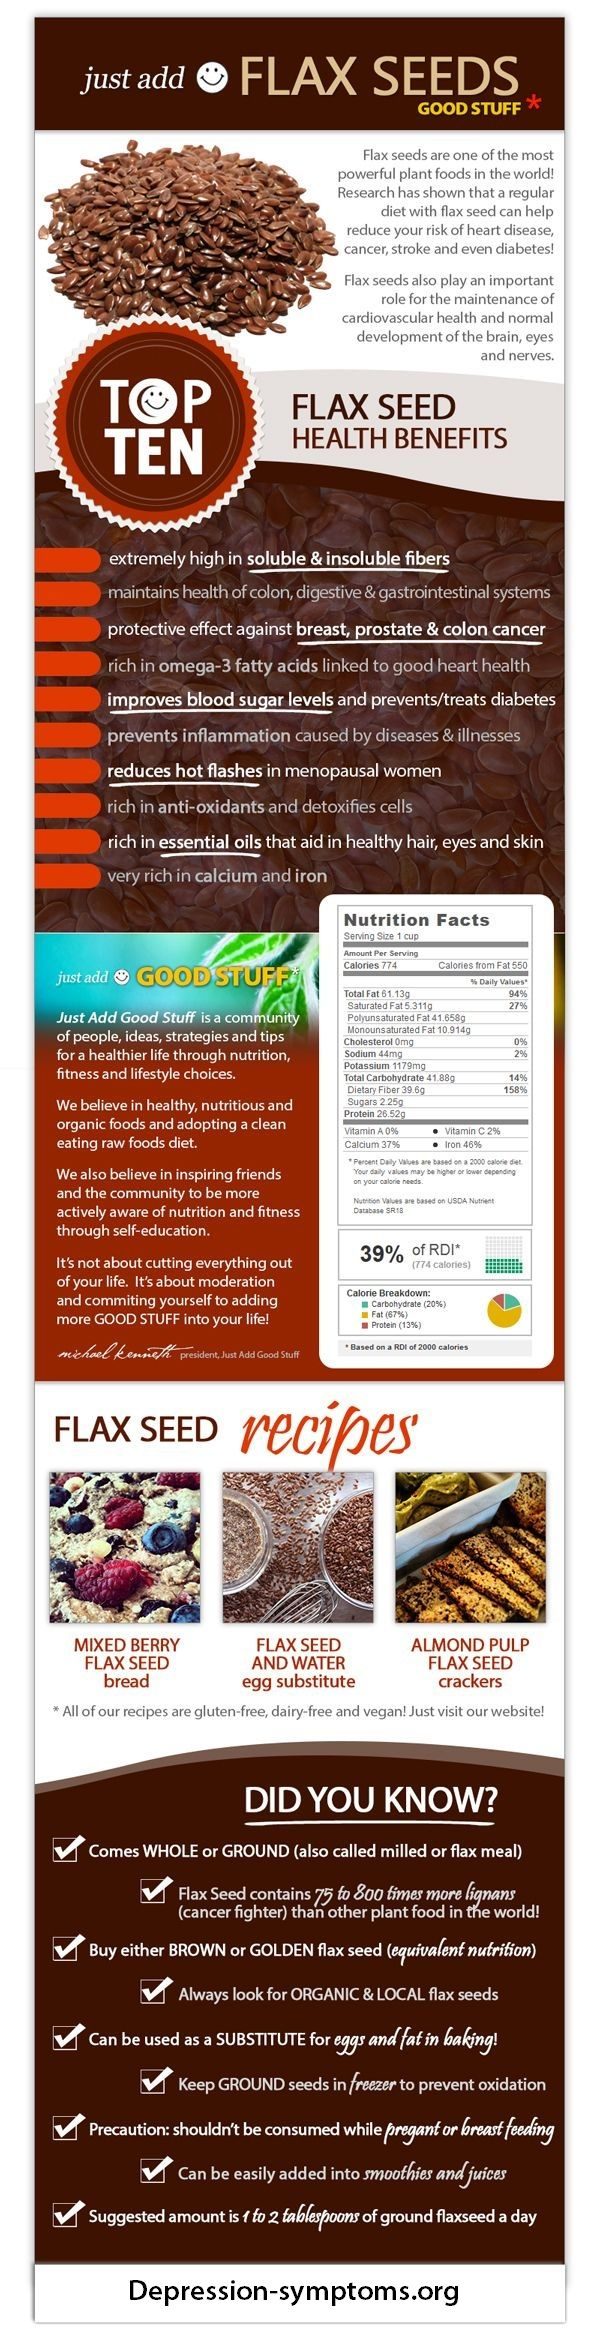 Flax Seed and Depression